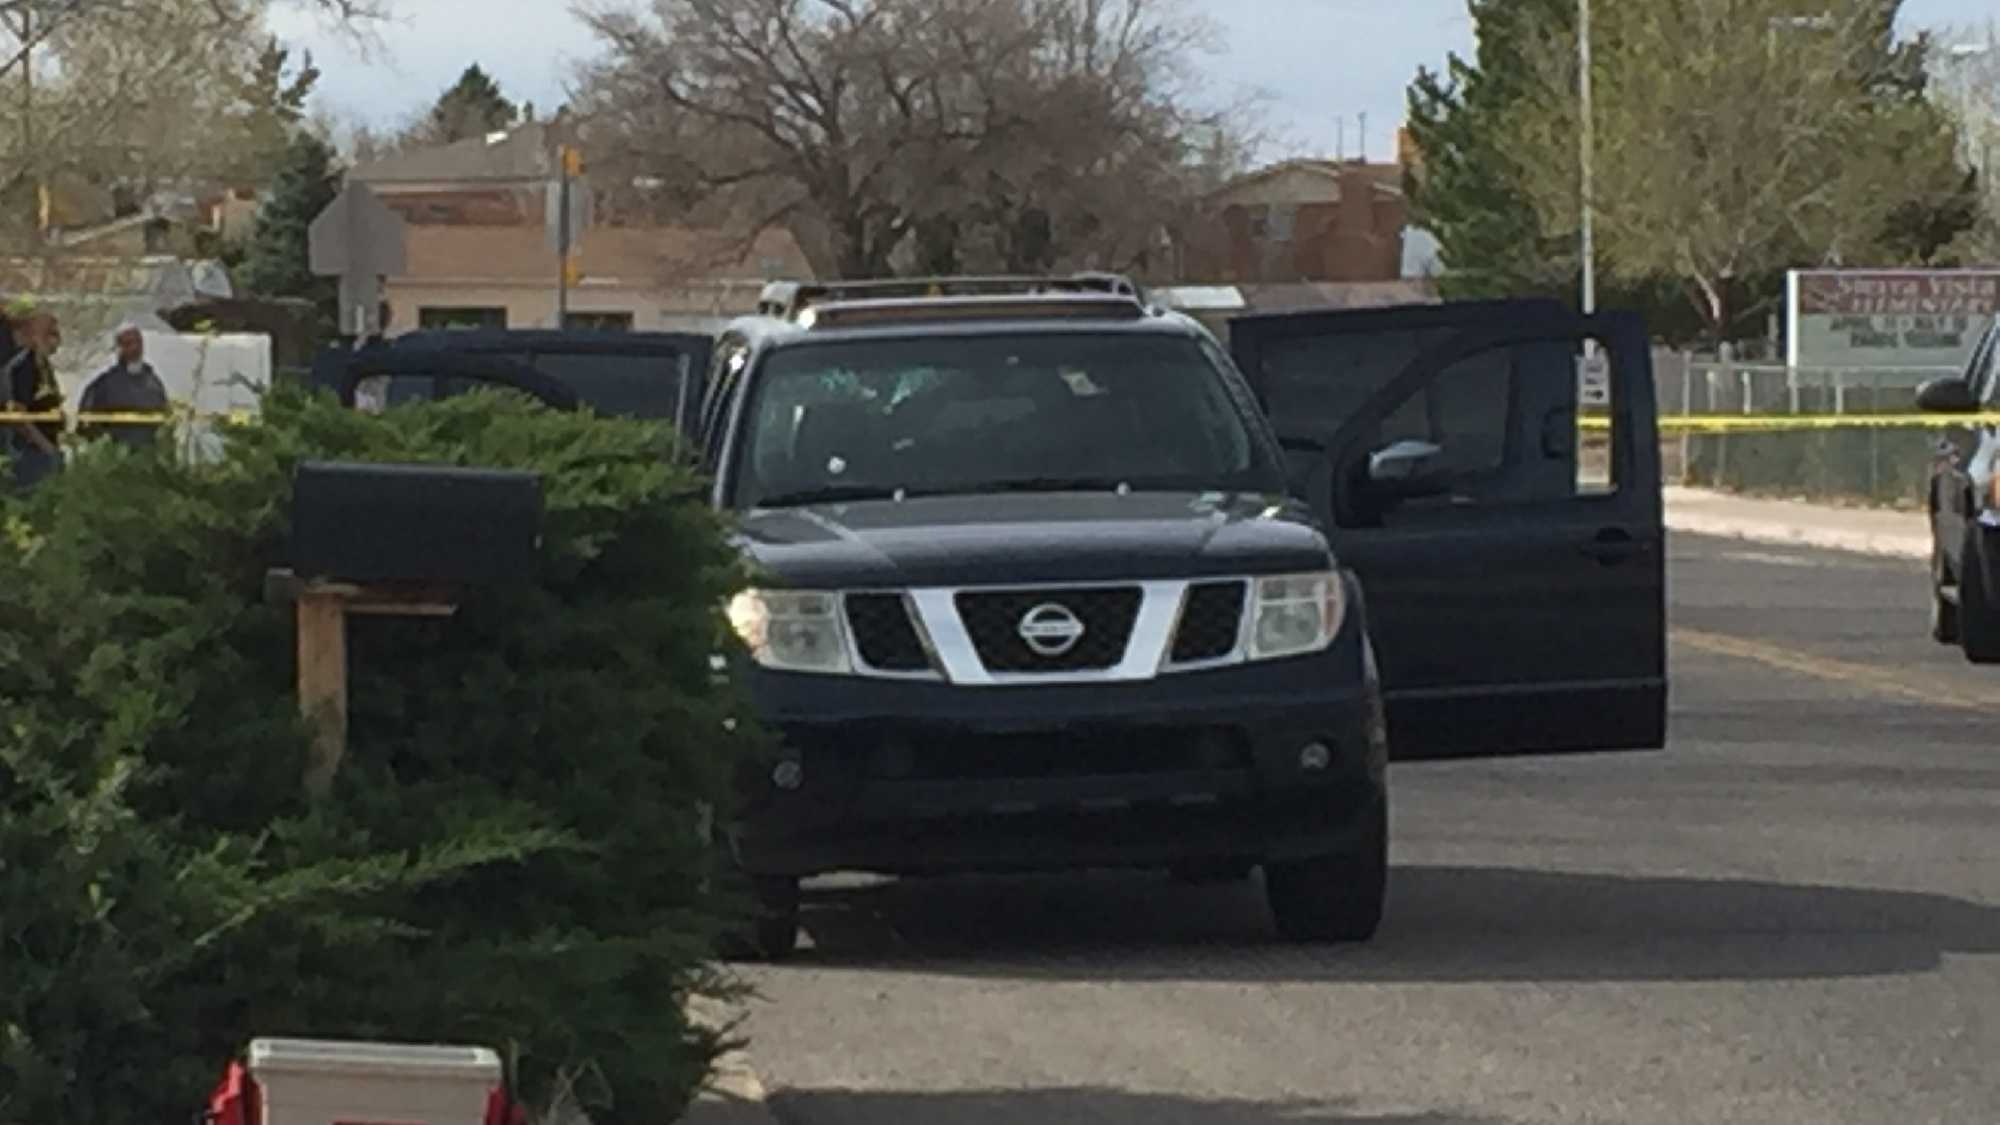 Shots were fired Thursday afternoon near Sierra Vista Elementary during a road rage incident. Bernalillo County Sheriff Department deputies said the incident began near Paseo Del Norte and Unser streets between a Blue Nissan Pathfinder and a white, four-door Buick.